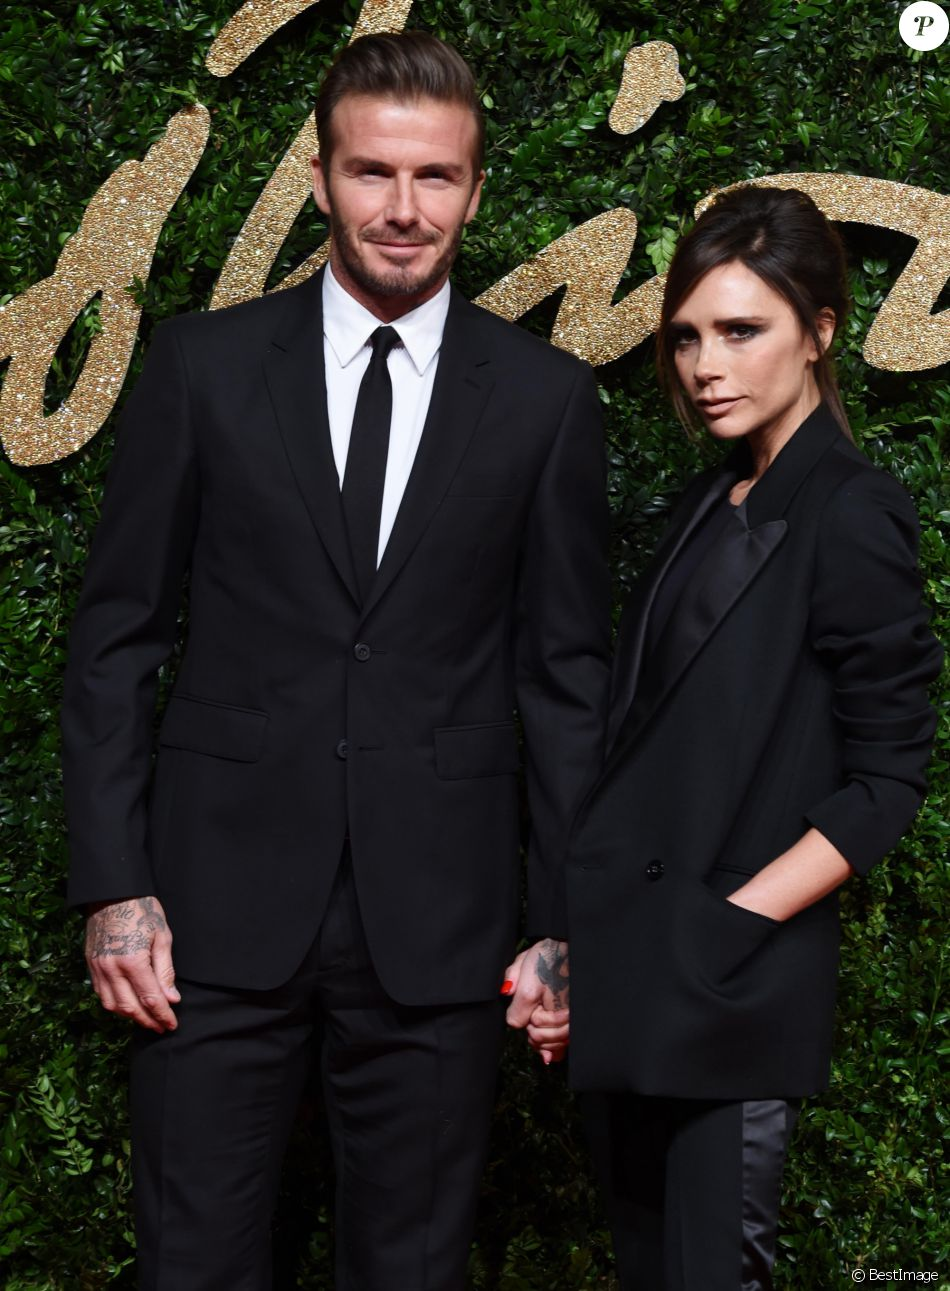 David Beckham et sa femme Victoria Beckham au British Fashion Awards 2015 à  Londres, le